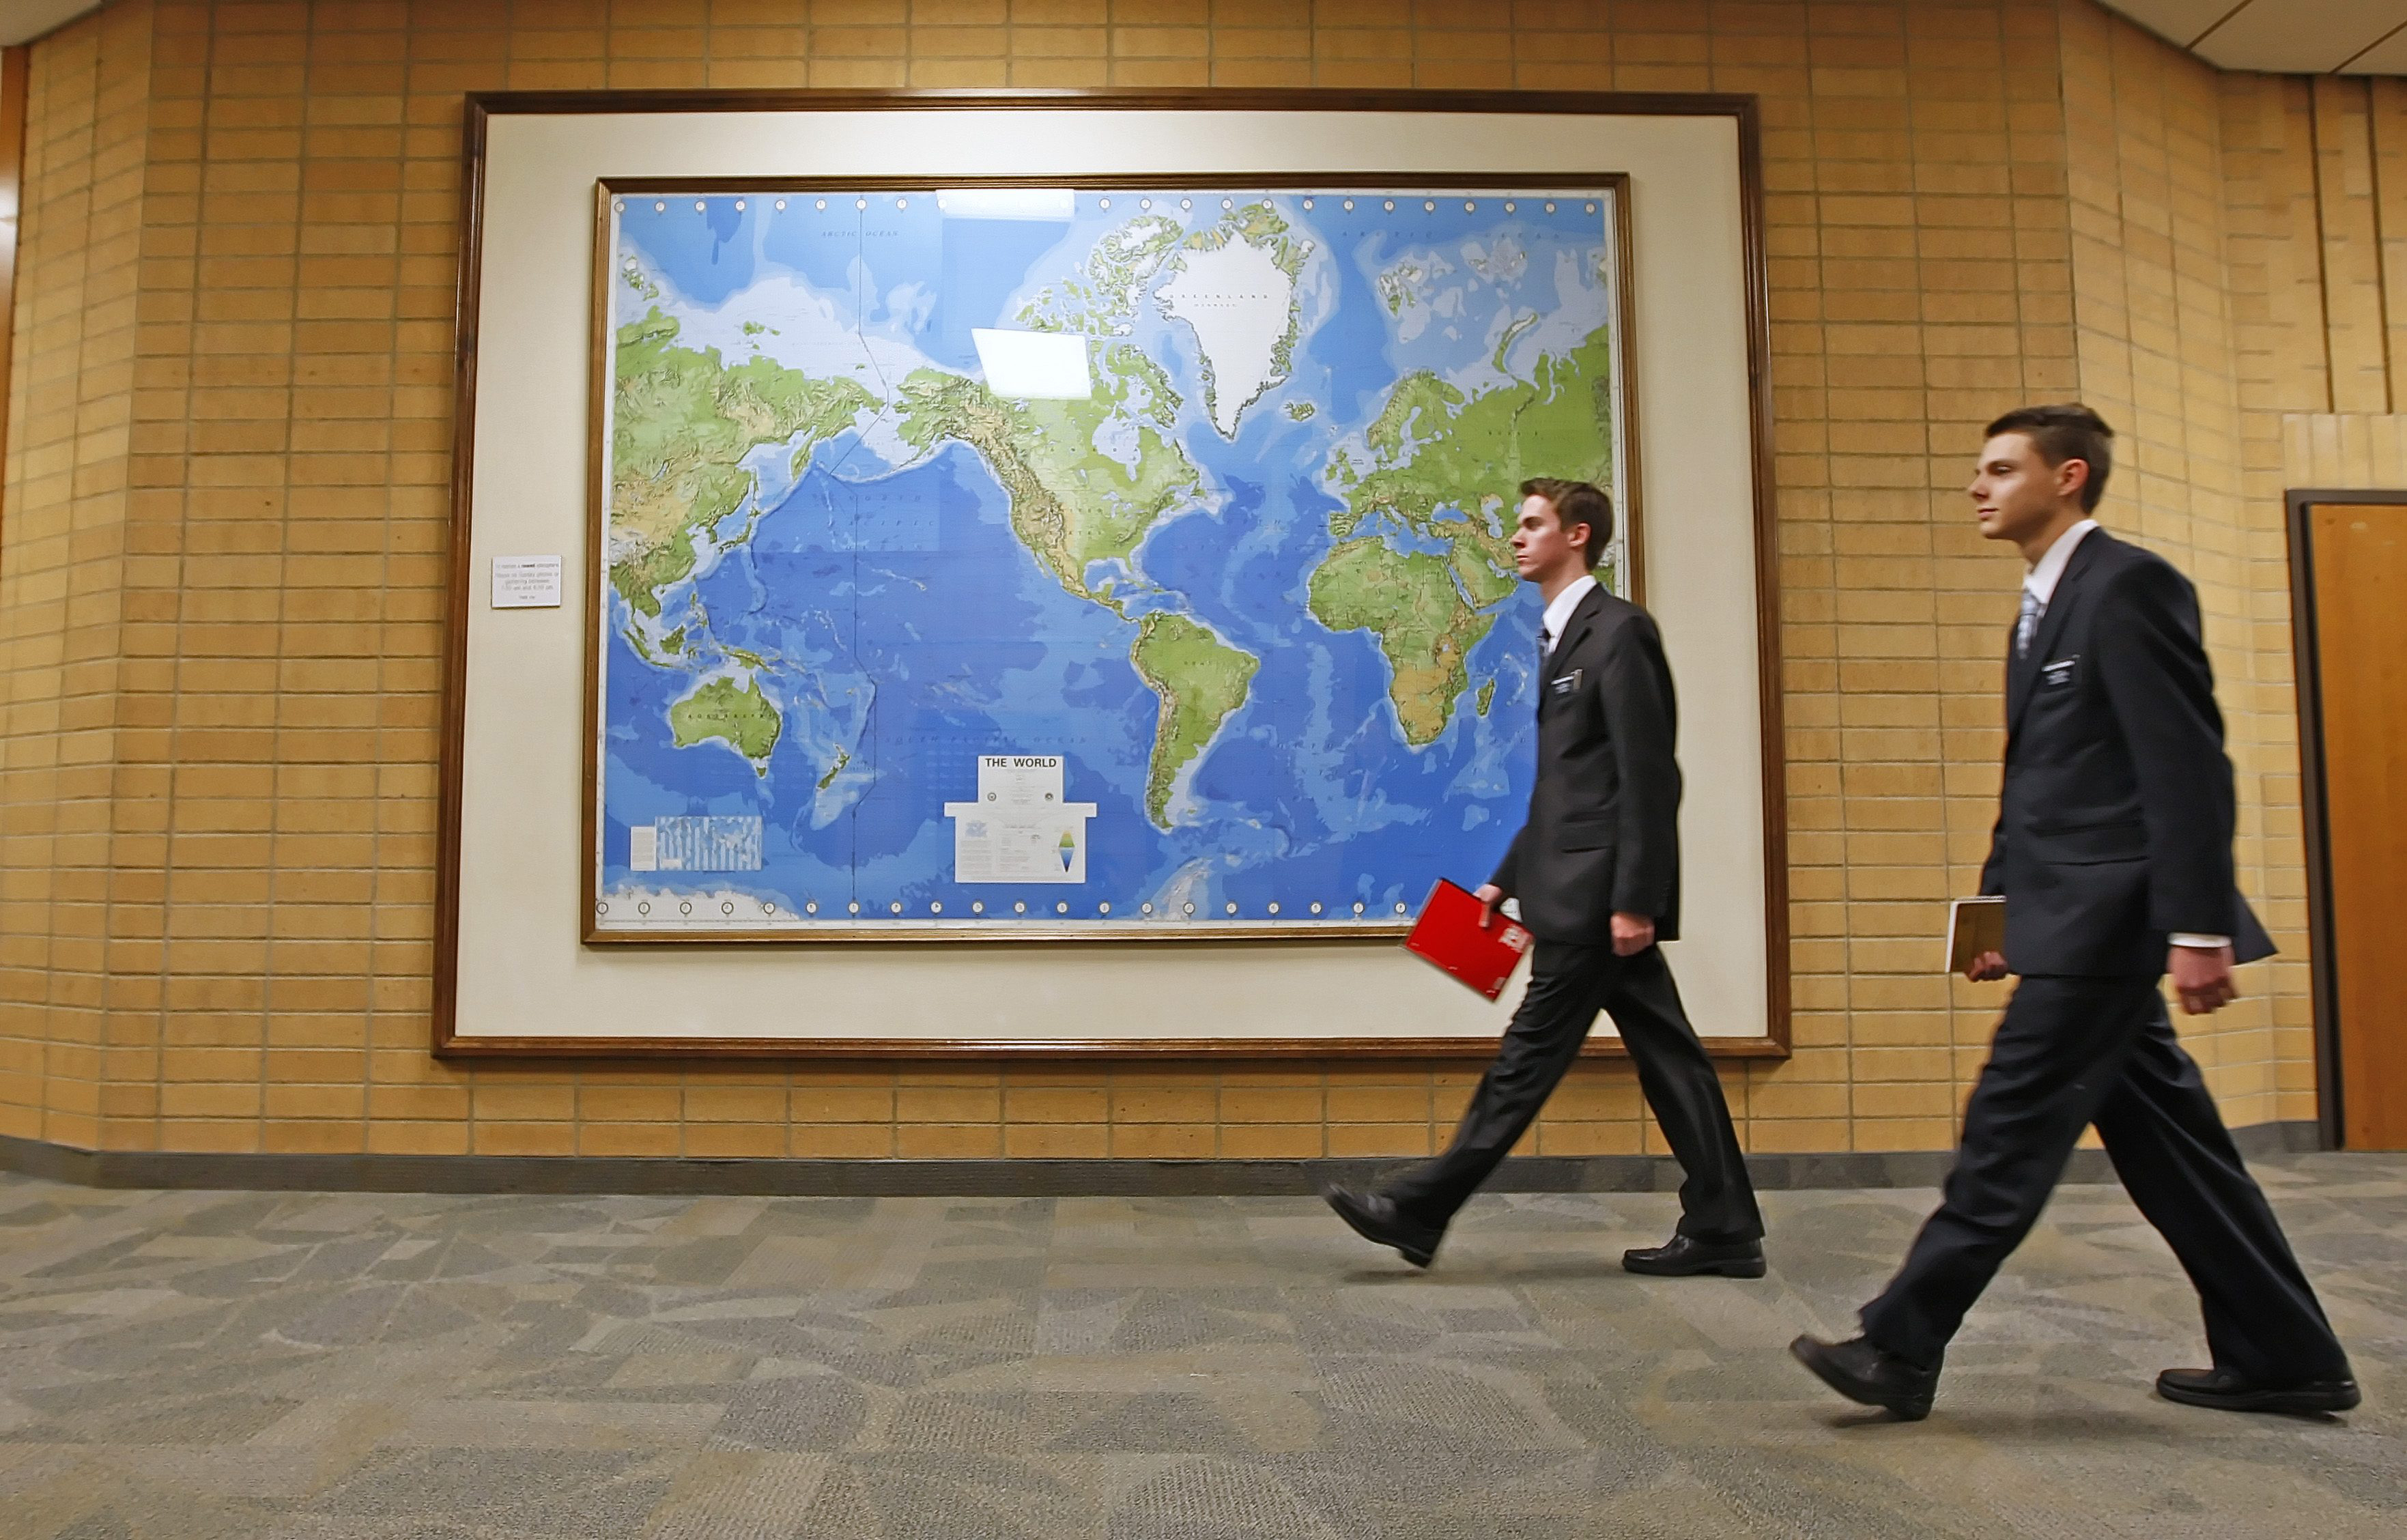 Two Mormon missionaries walk past a large map of the world in a hallway at the Missionary Training Center in Provo, Utah Thursday January 31, 2008. The Mormon church has over 50,000 missionaries at anyone time serving around the world most of who are in their late teens or early 20's. (AP Photo/George Frey)